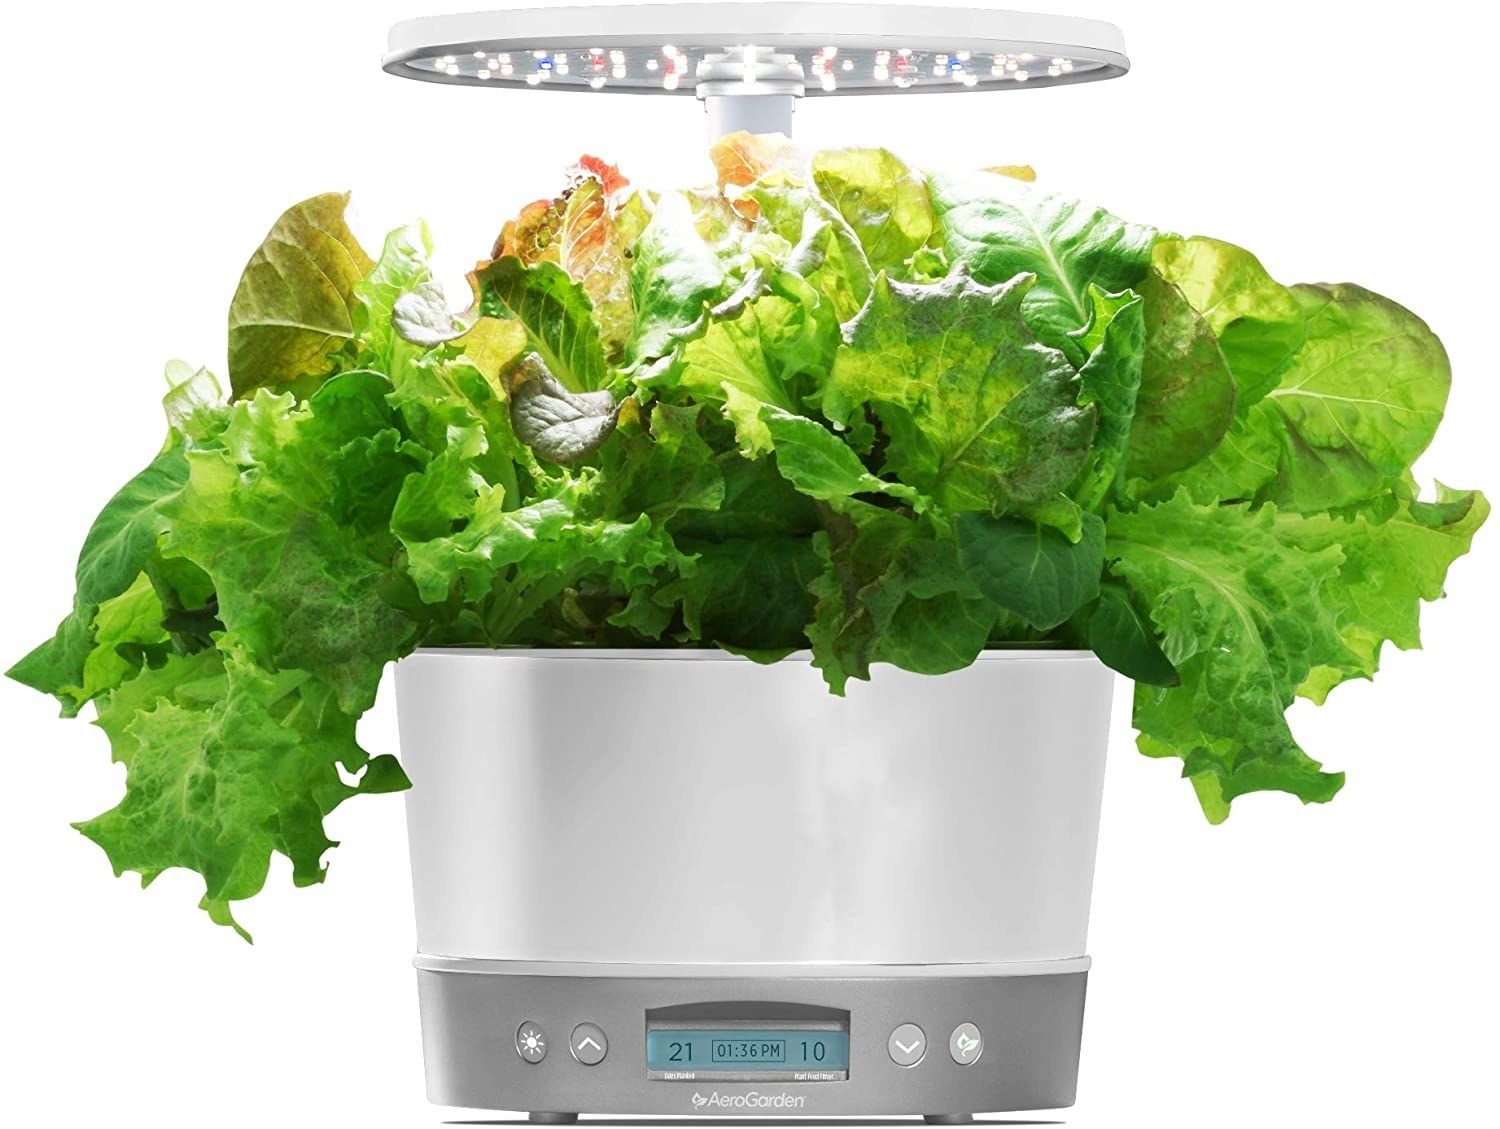 The Aerogarden filled with lettuce